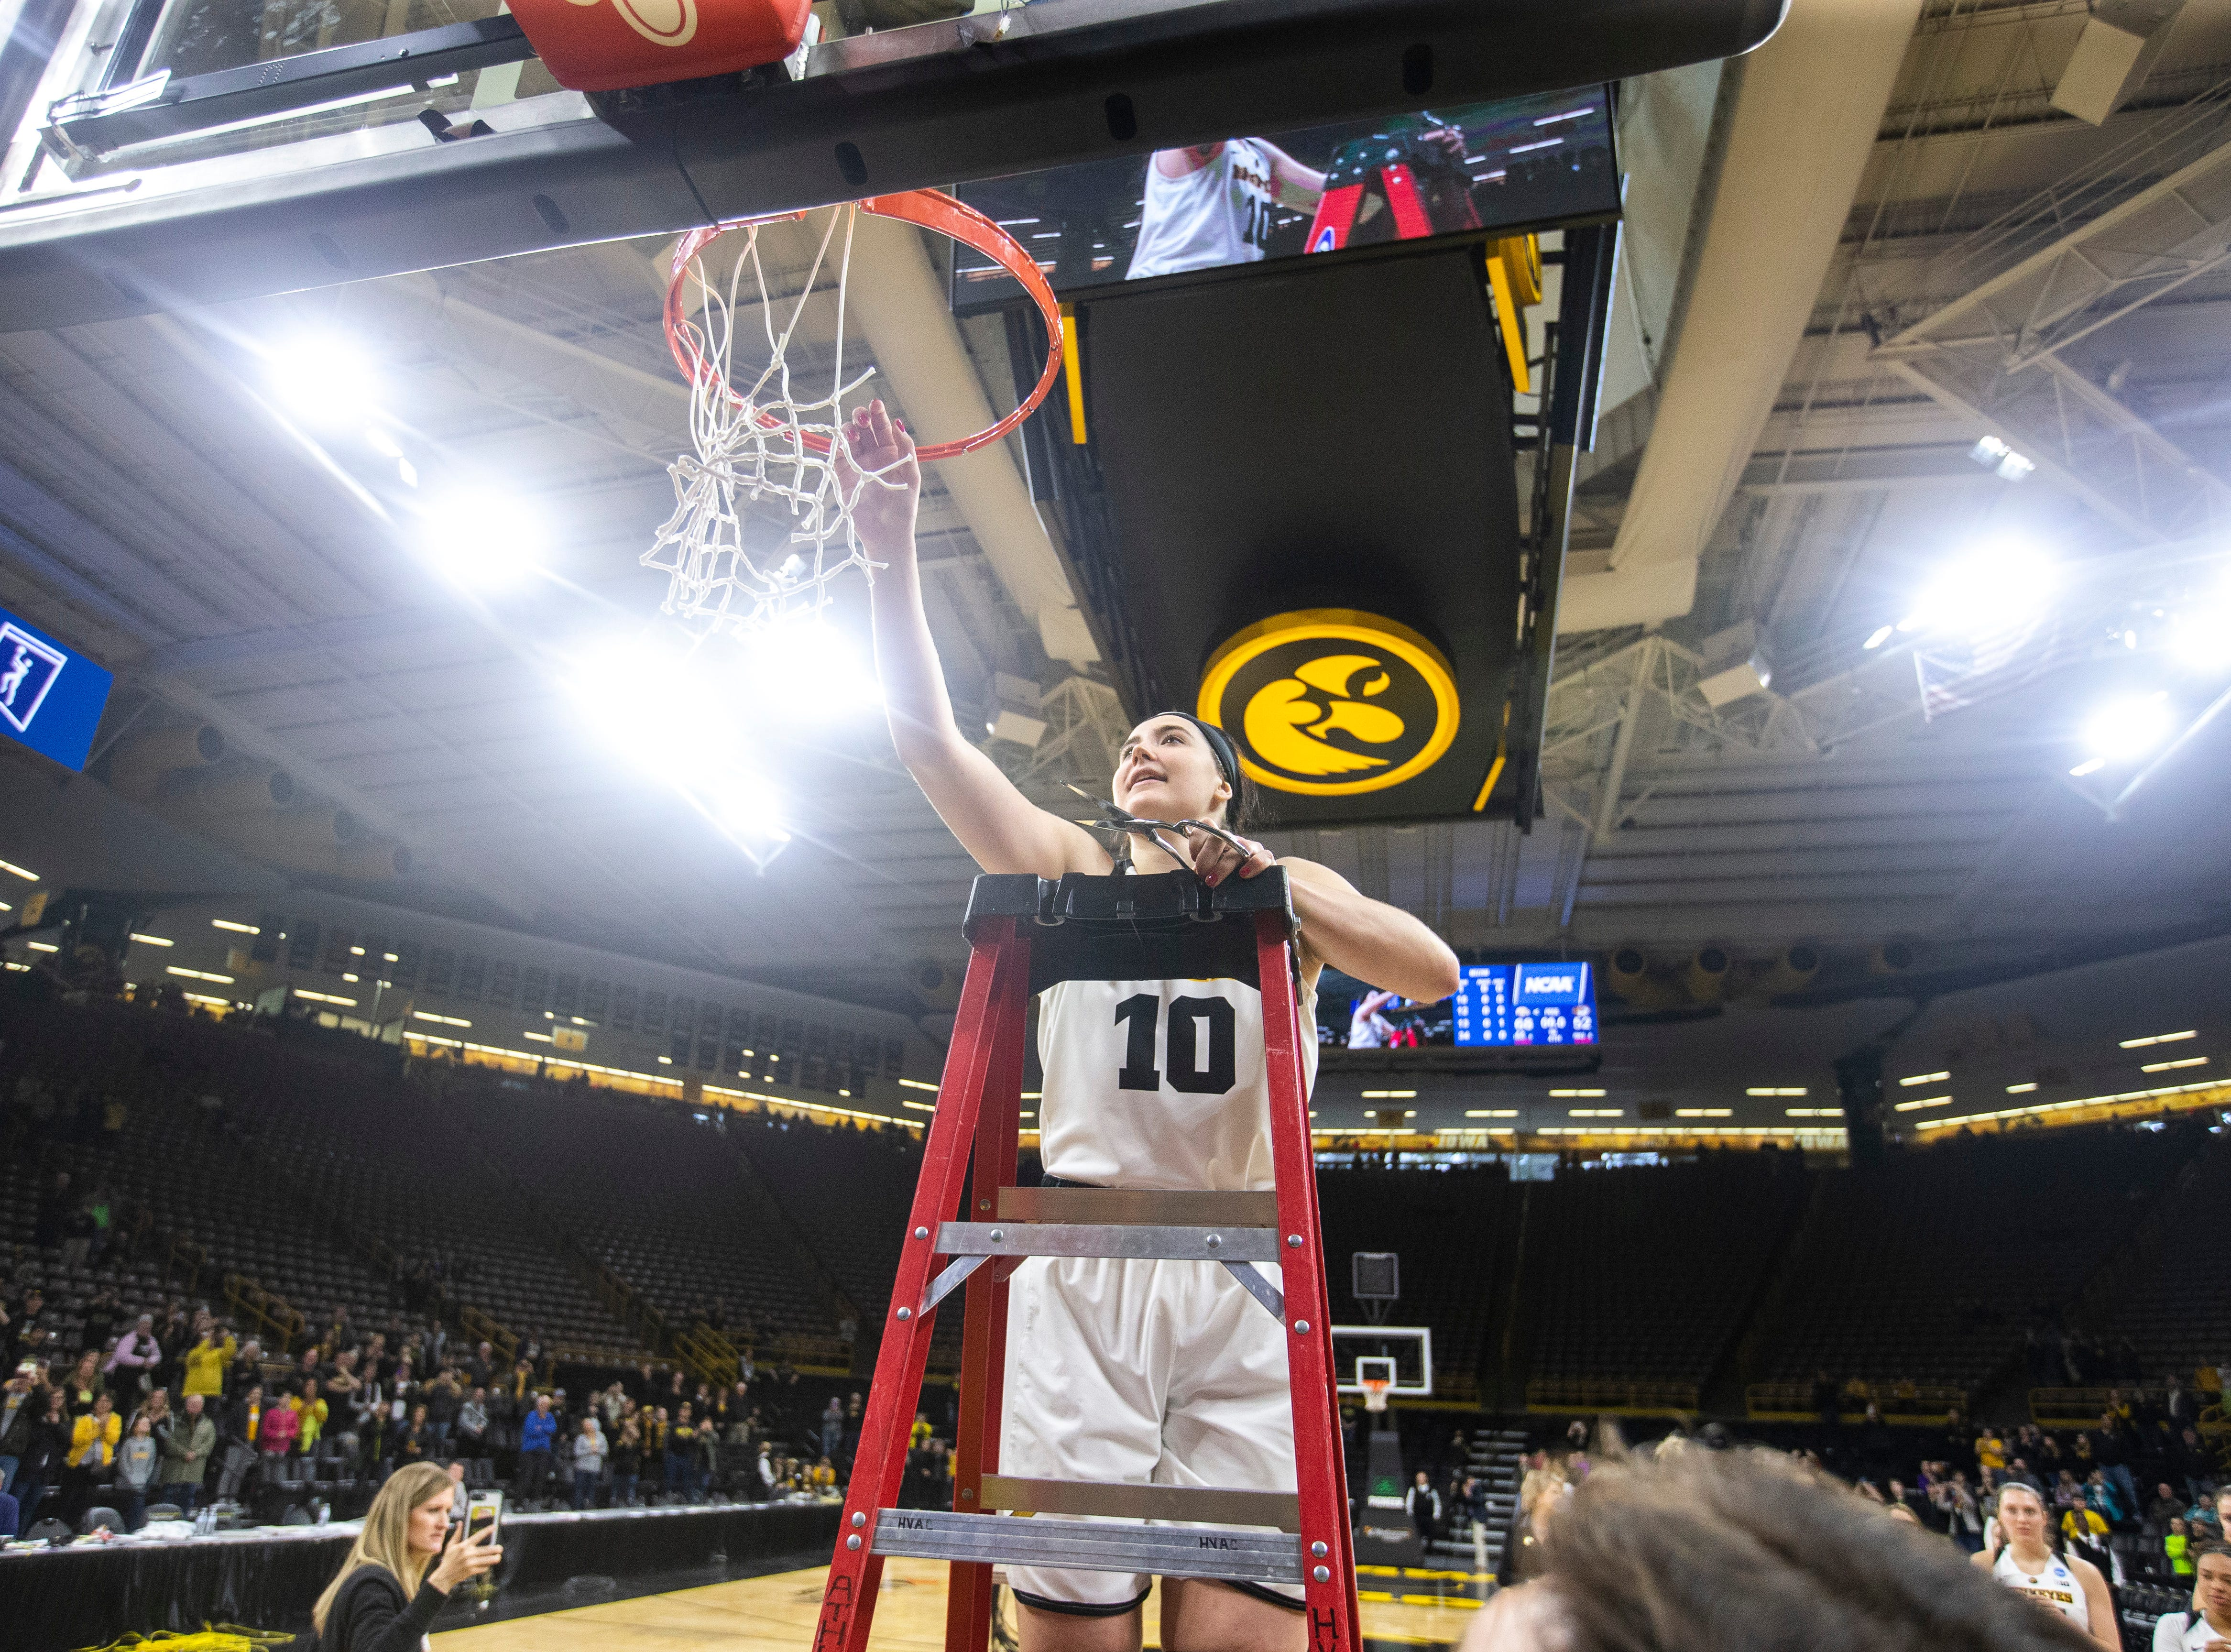 Iowa center Megan Gustafson (10) cuts down a piece of the net after a NCAA women's basketball tournament second-round game, Sunday, March 24, 2019, at Carver-Hawkeye Arena in Iowa City, Iowa.